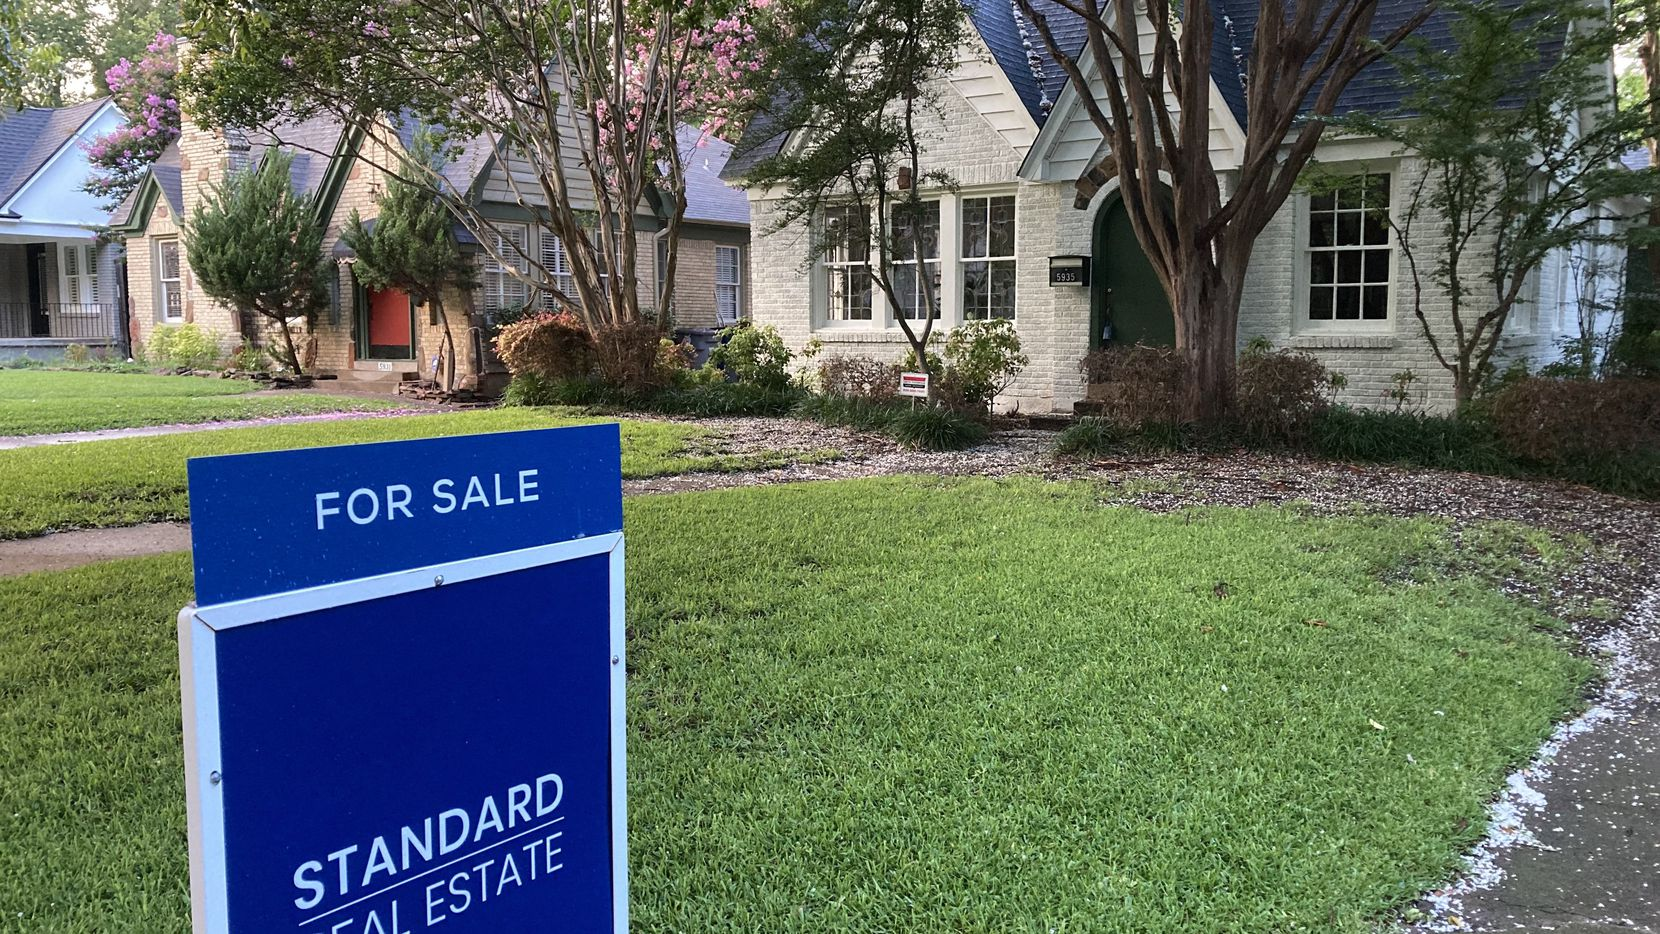 North Texas real estate agents sold more than 55,000 single-family homes in the first half of 2021 - up 7% from the same period last year.